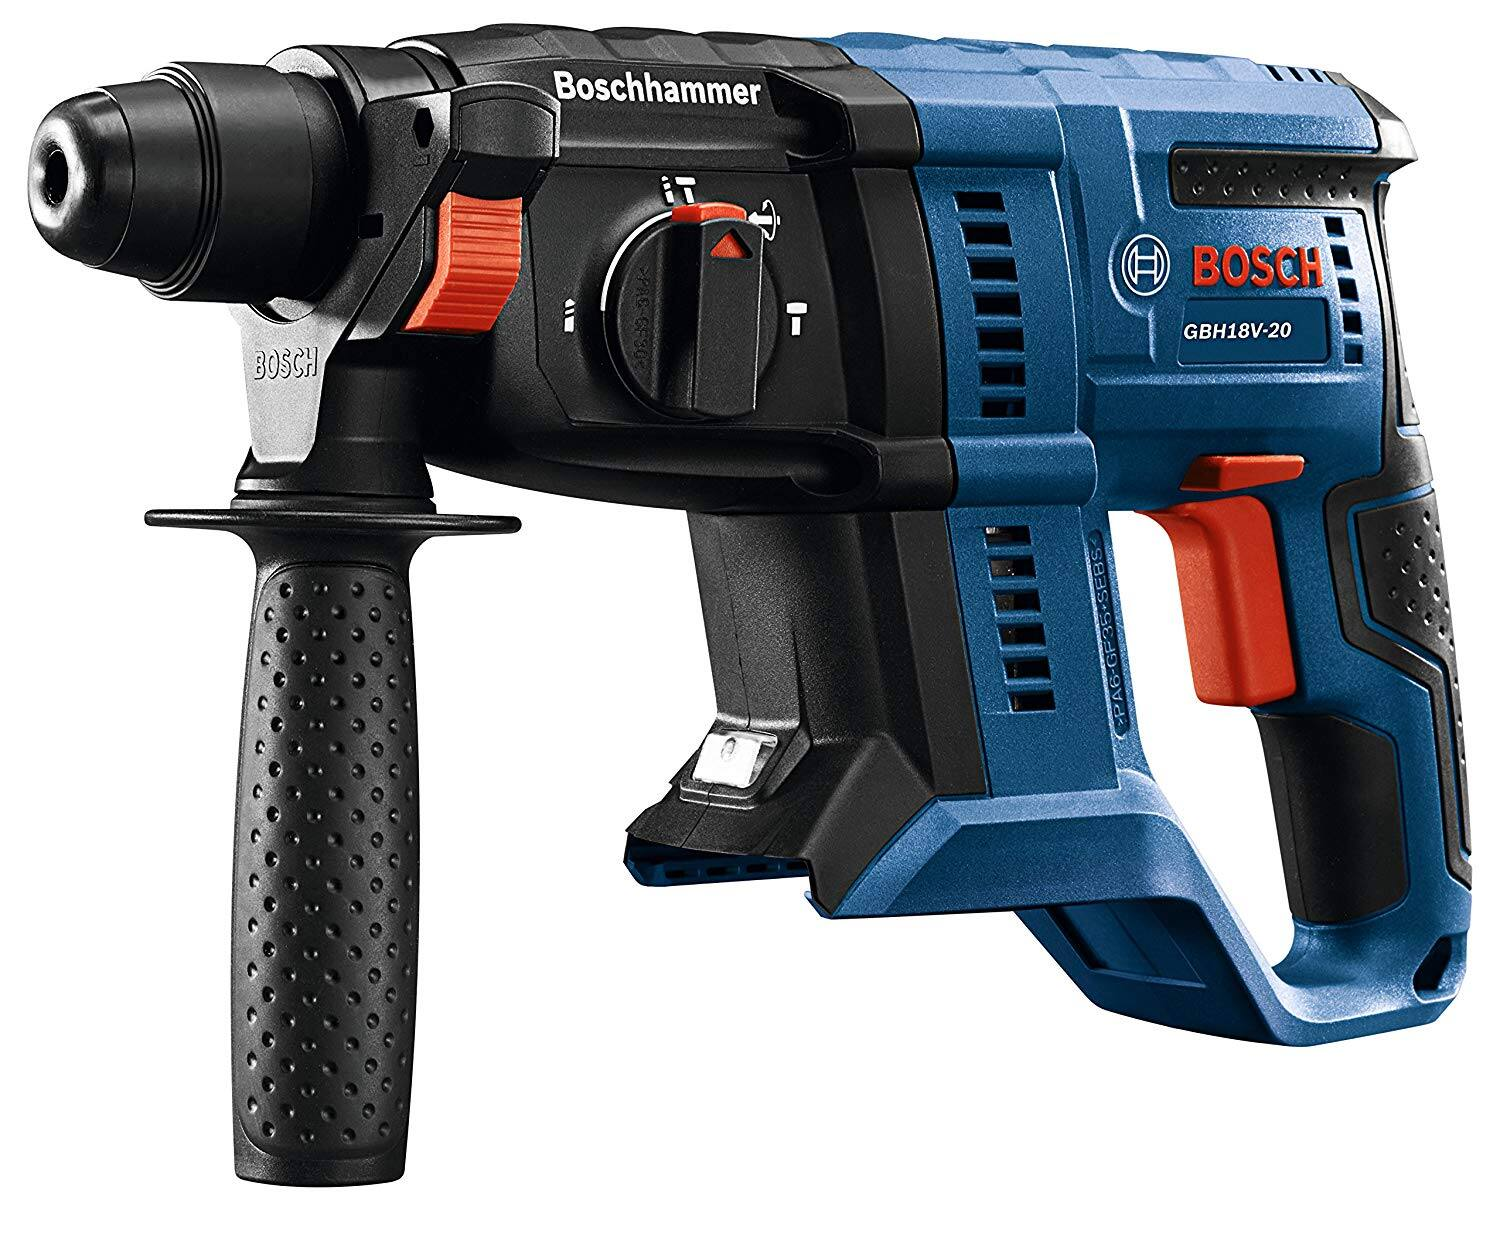 Bosch GBH18V-20N 18V 3/4 in. SDS-plus Rotary Hammer (Bare Tool) plus Bosch Core18v 4-Amp Lithium Power Tool Battery Kit (Charger Included) @ Lowes $118 YMMV